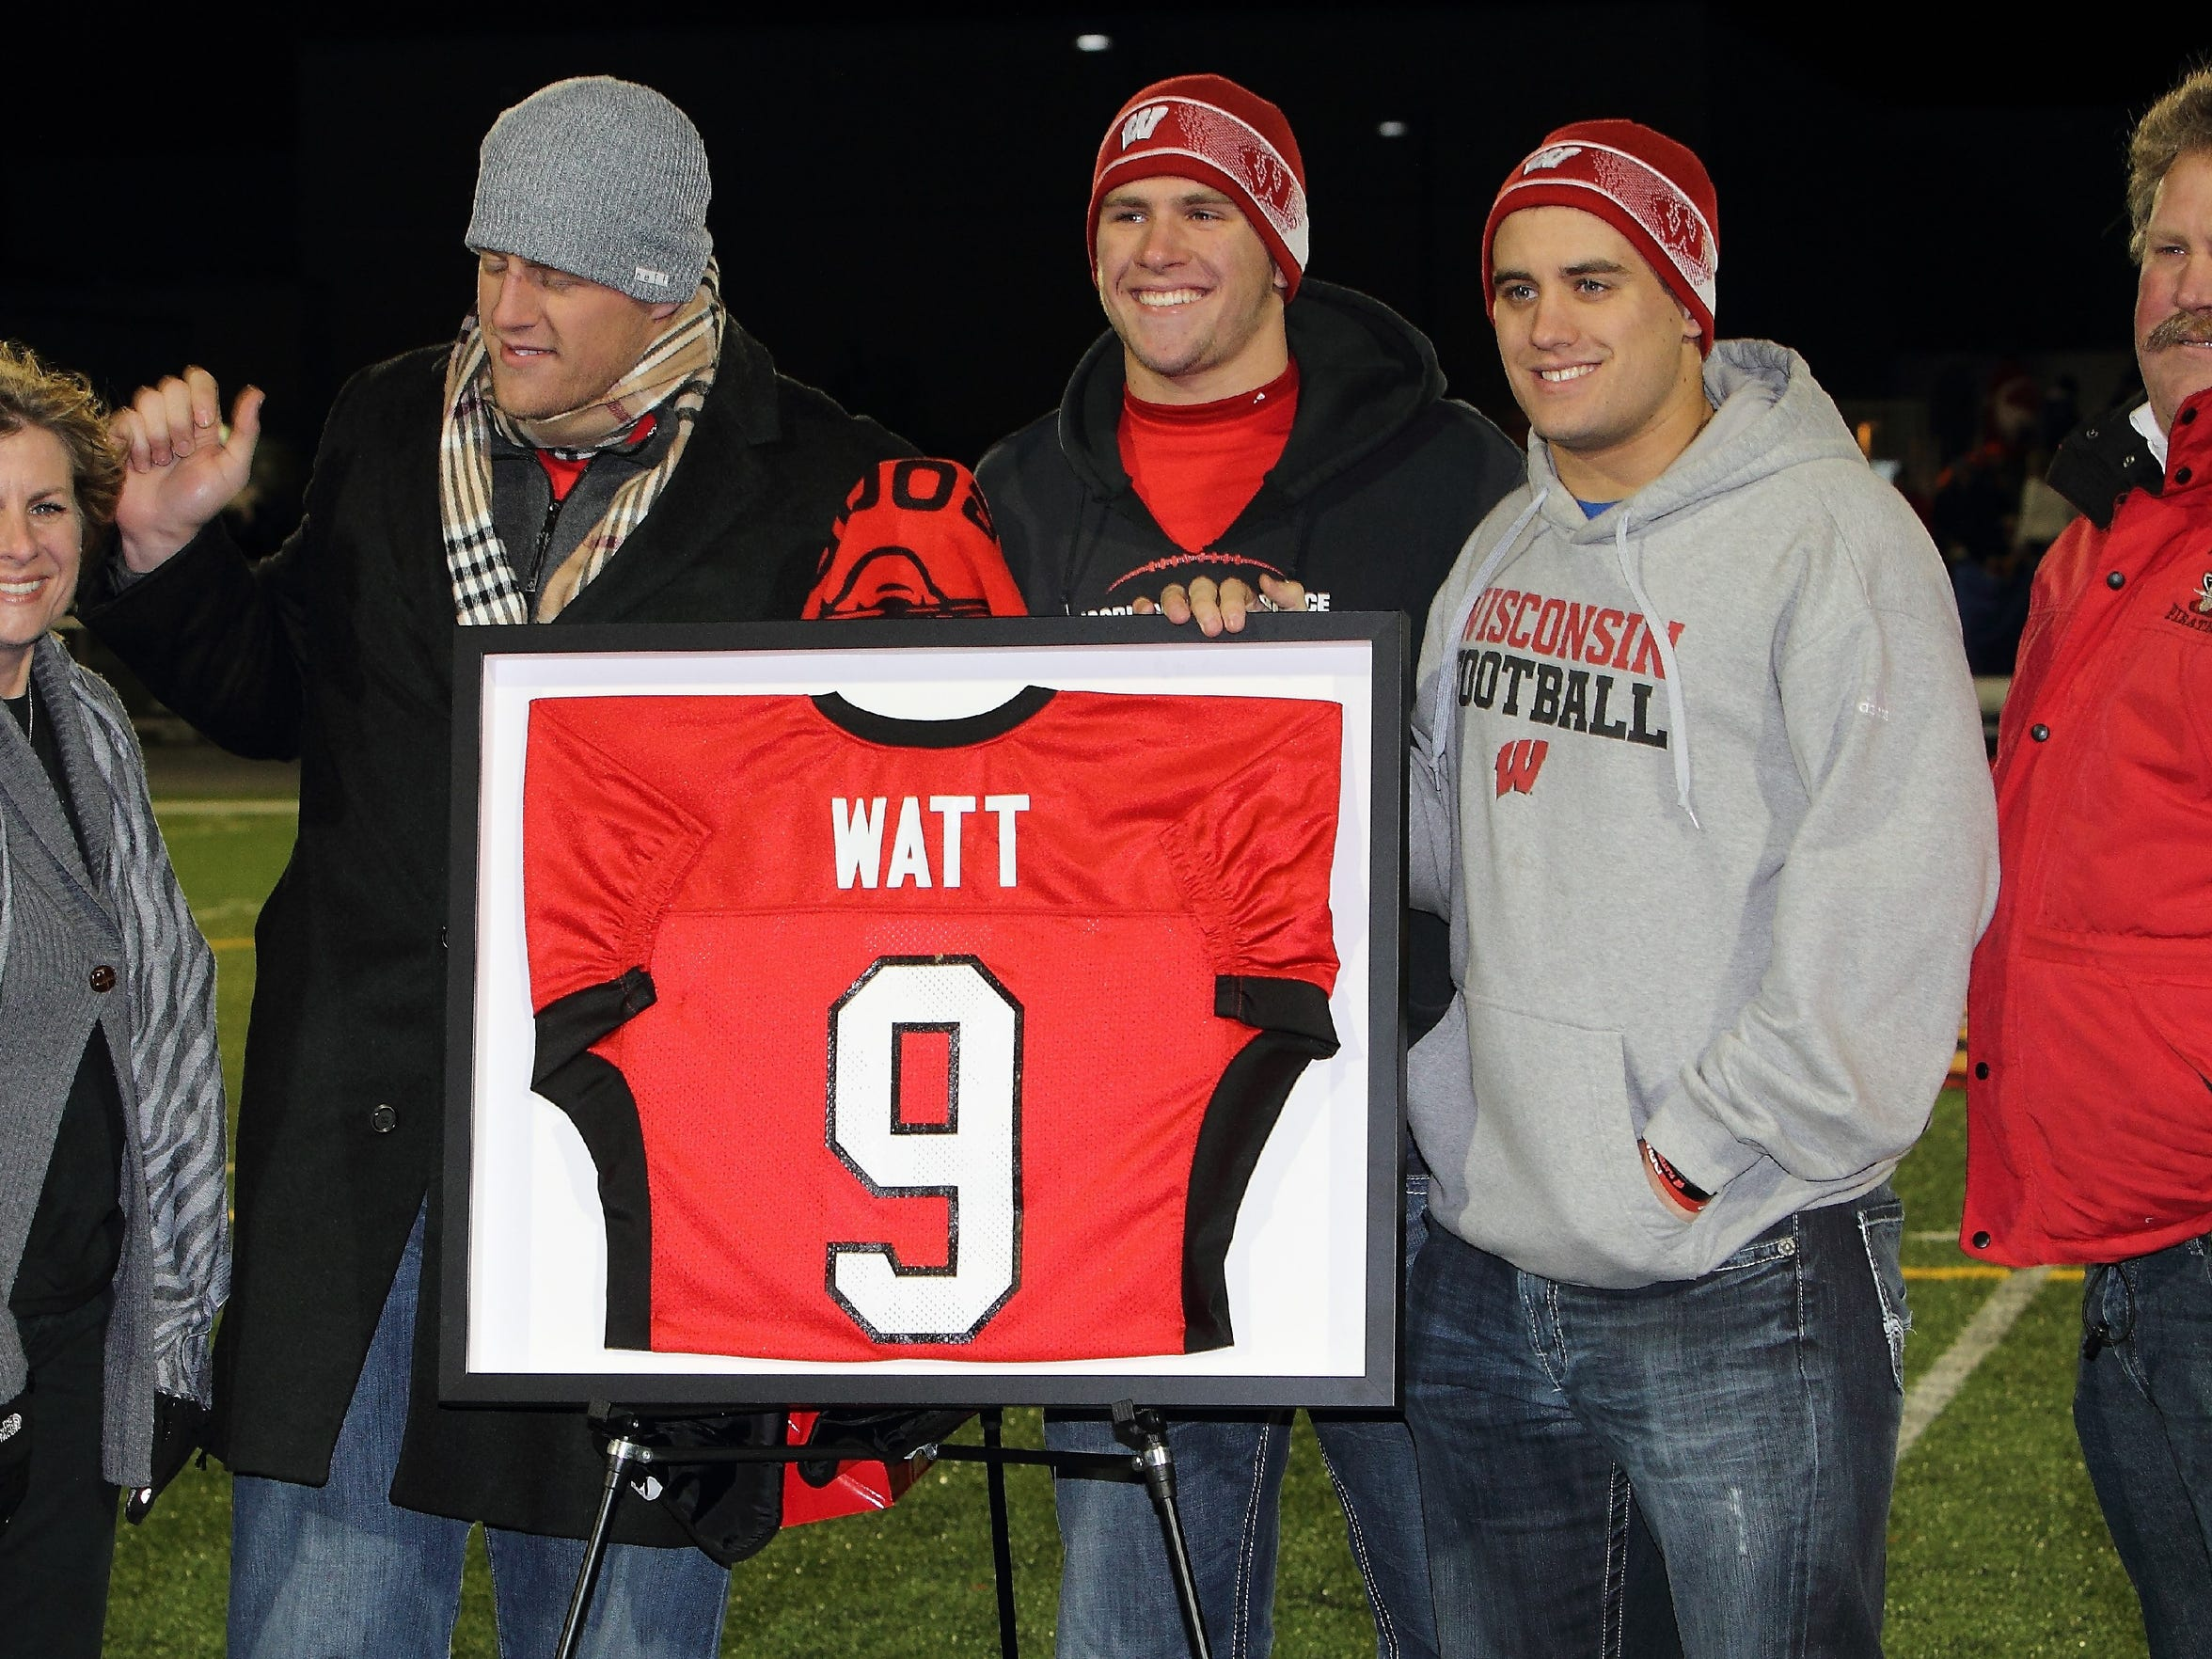 Pewaukee High School honored J.J. Watt by retiring